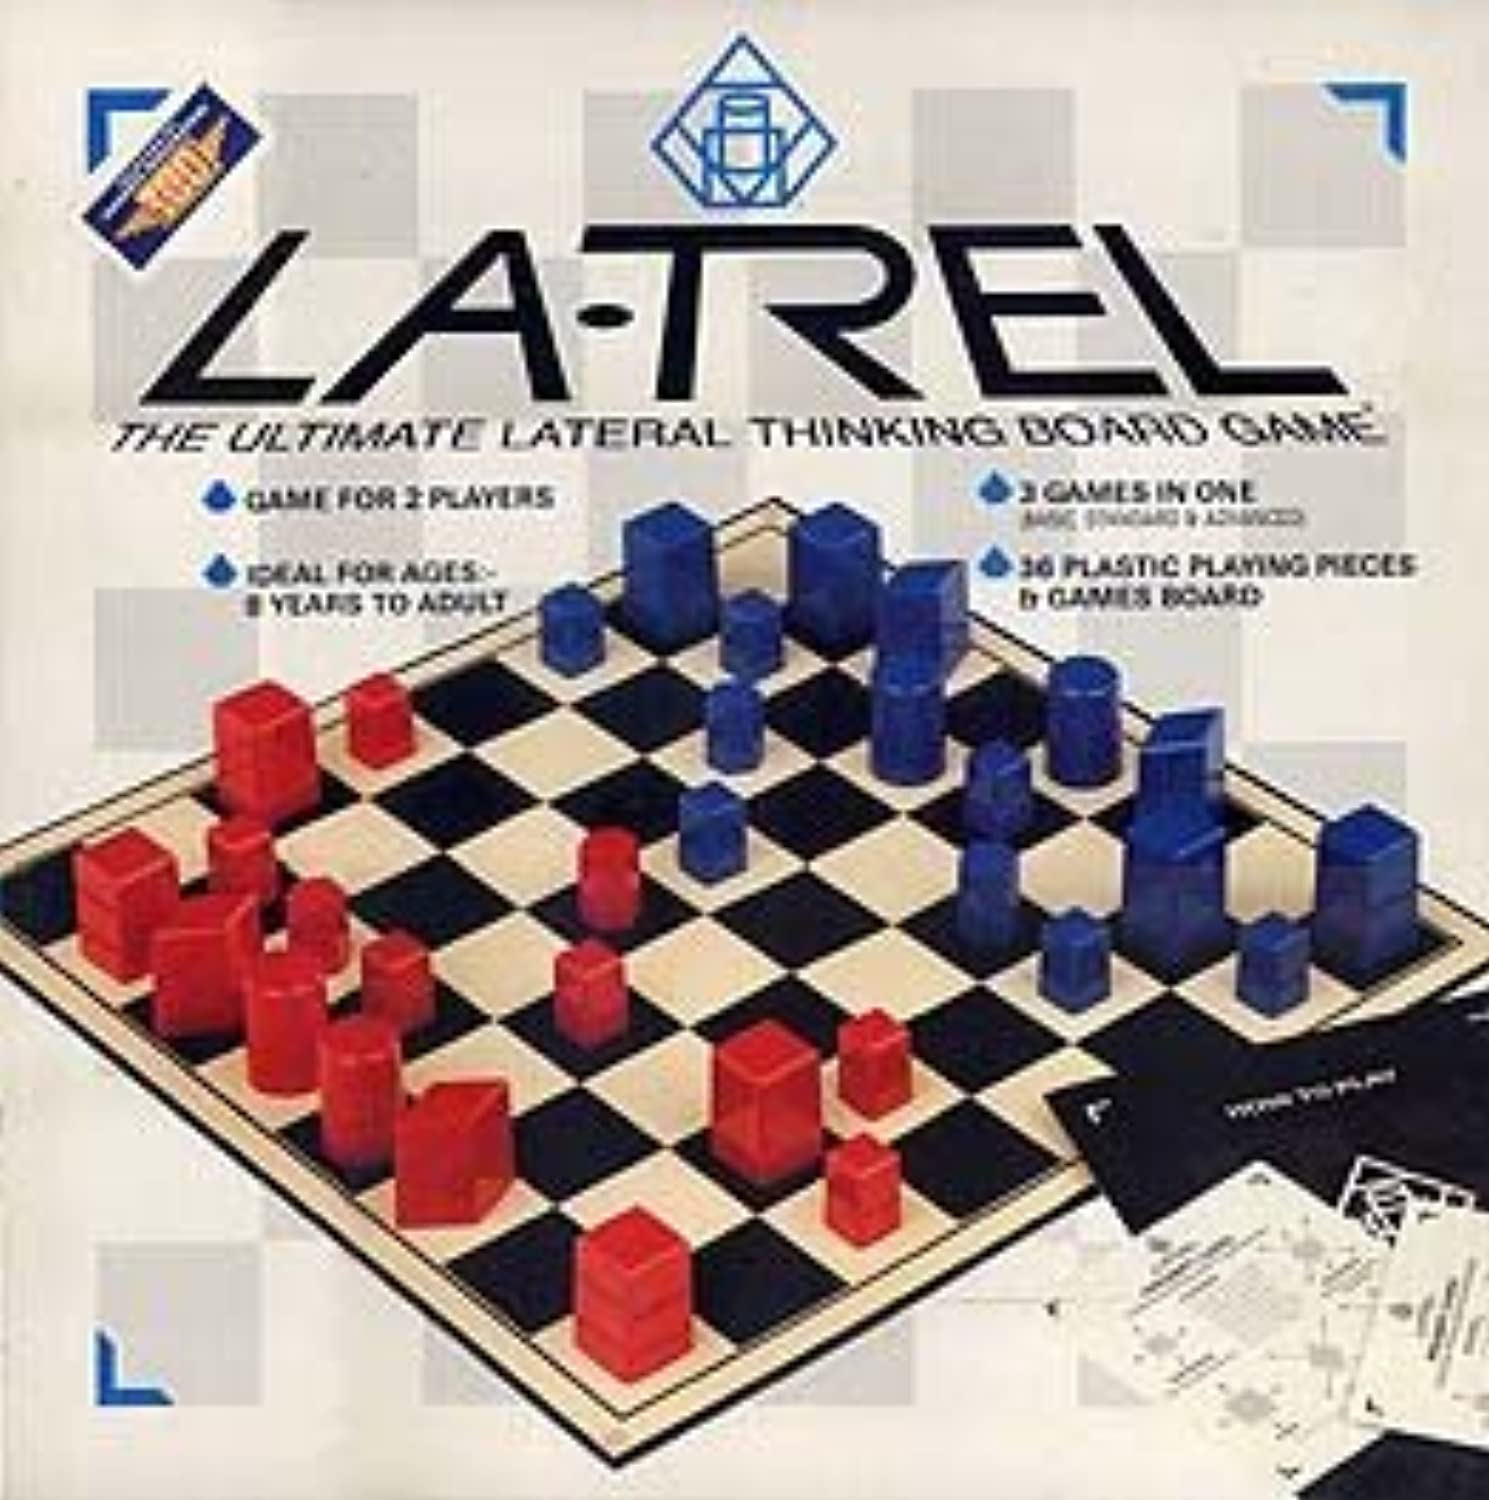 Lateral Thinking Board Game  Latrel